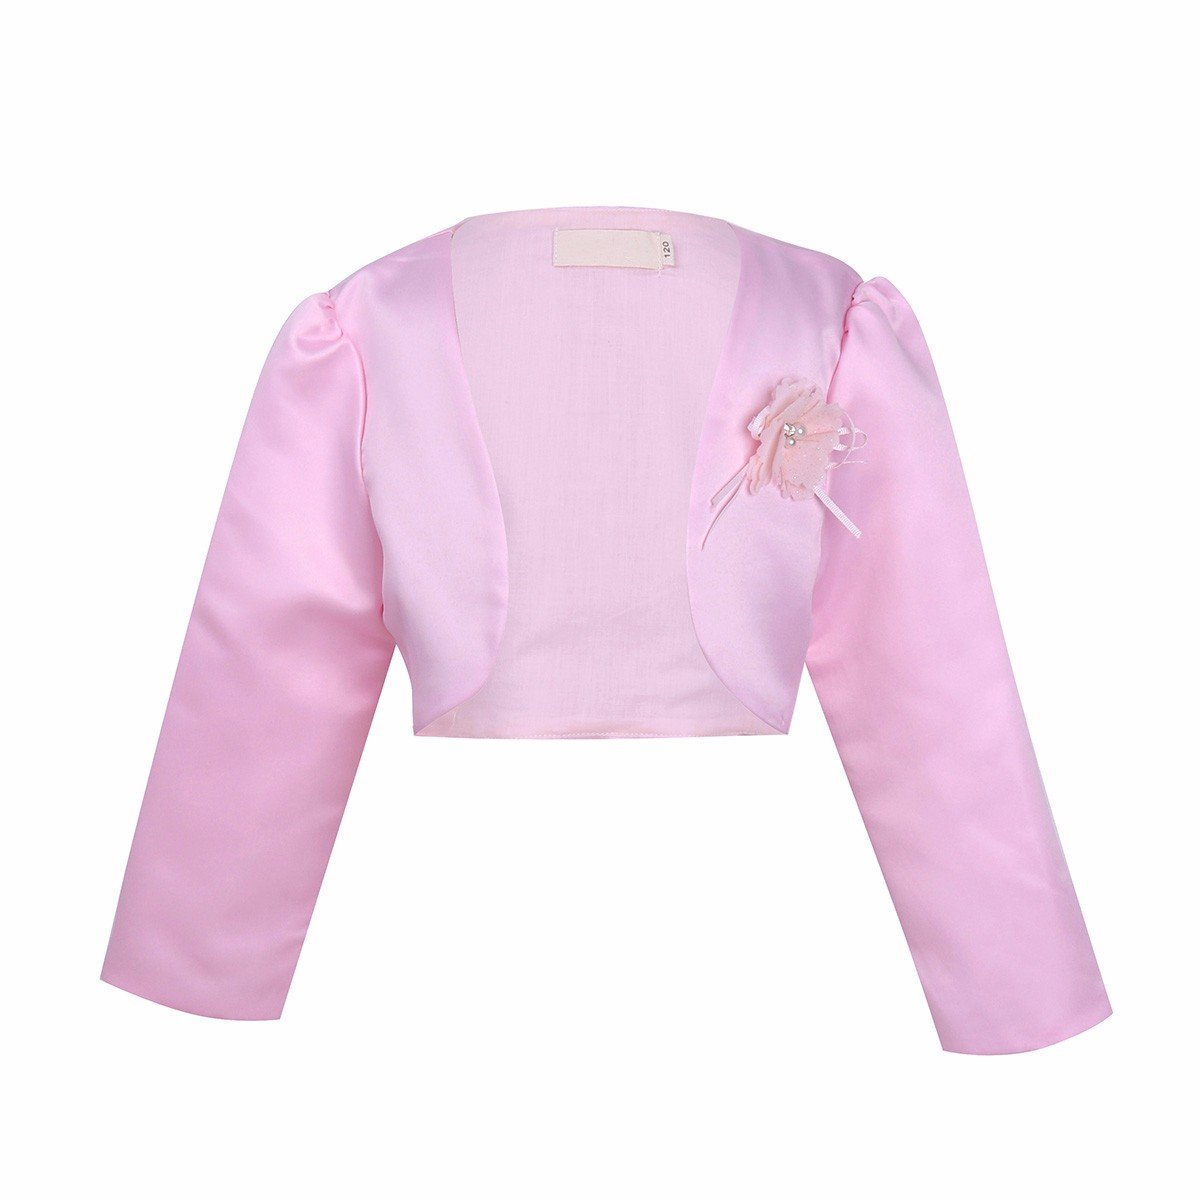 Freebily Kids Girls Long Sleeves Satin Bolero Jacket Shrug Short Cardigan Sweater Dress Cover up